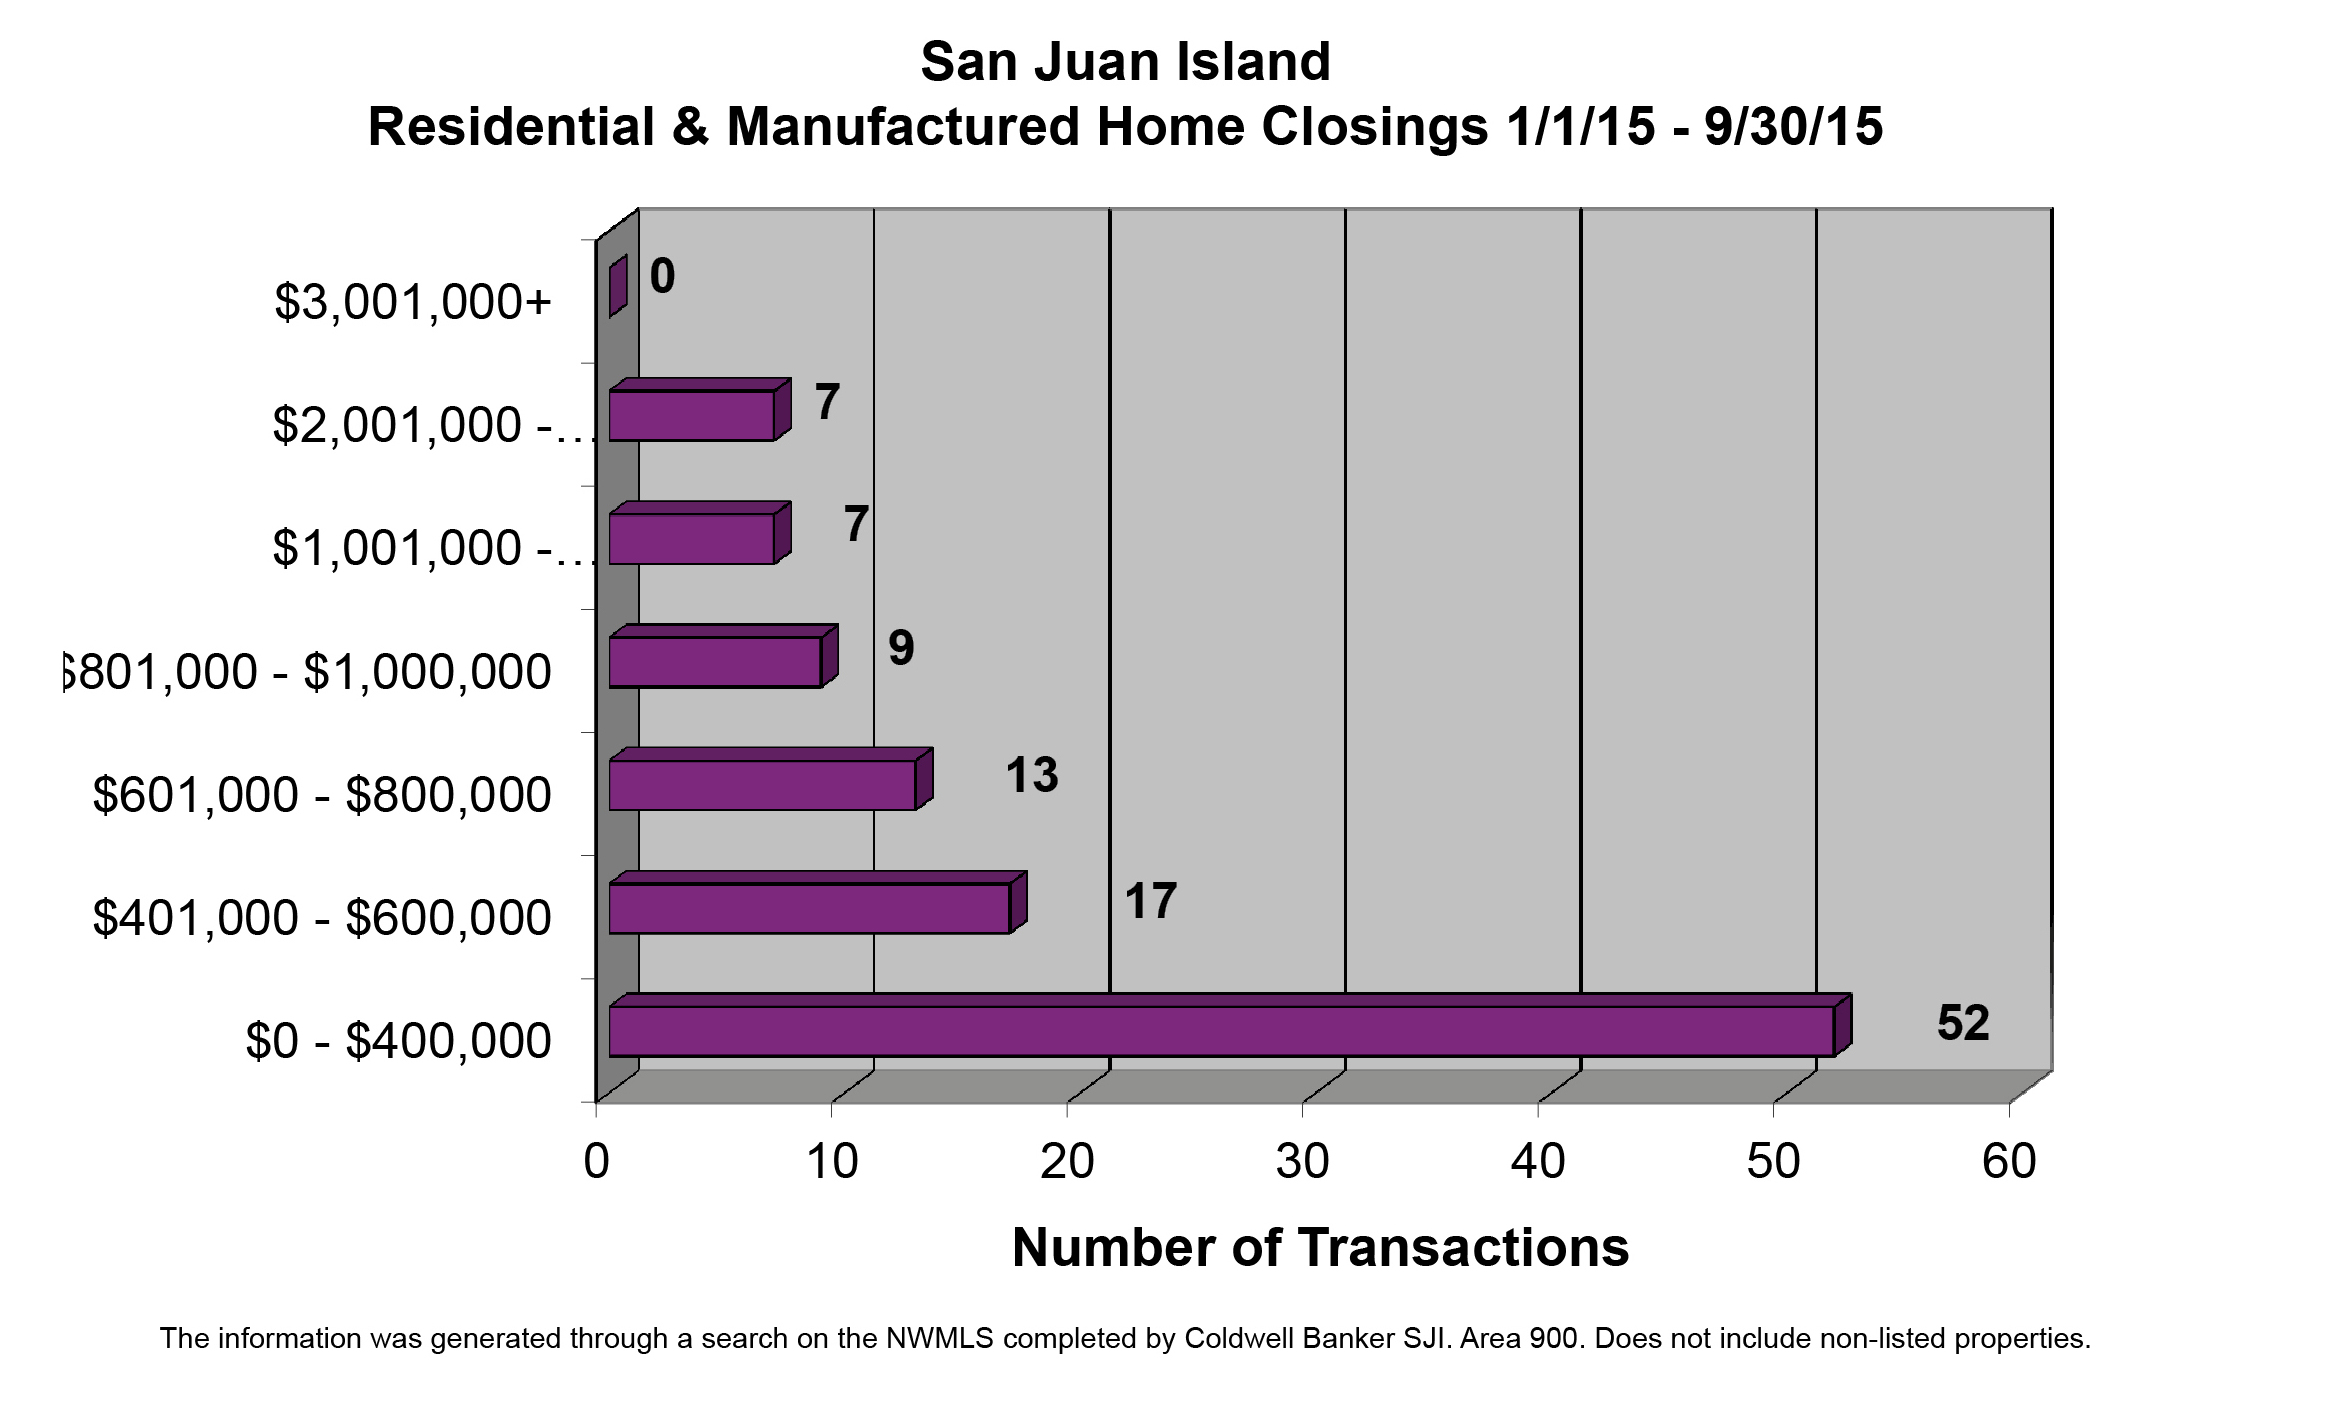 San Juan Island Home Sales Jan - Sept 2015